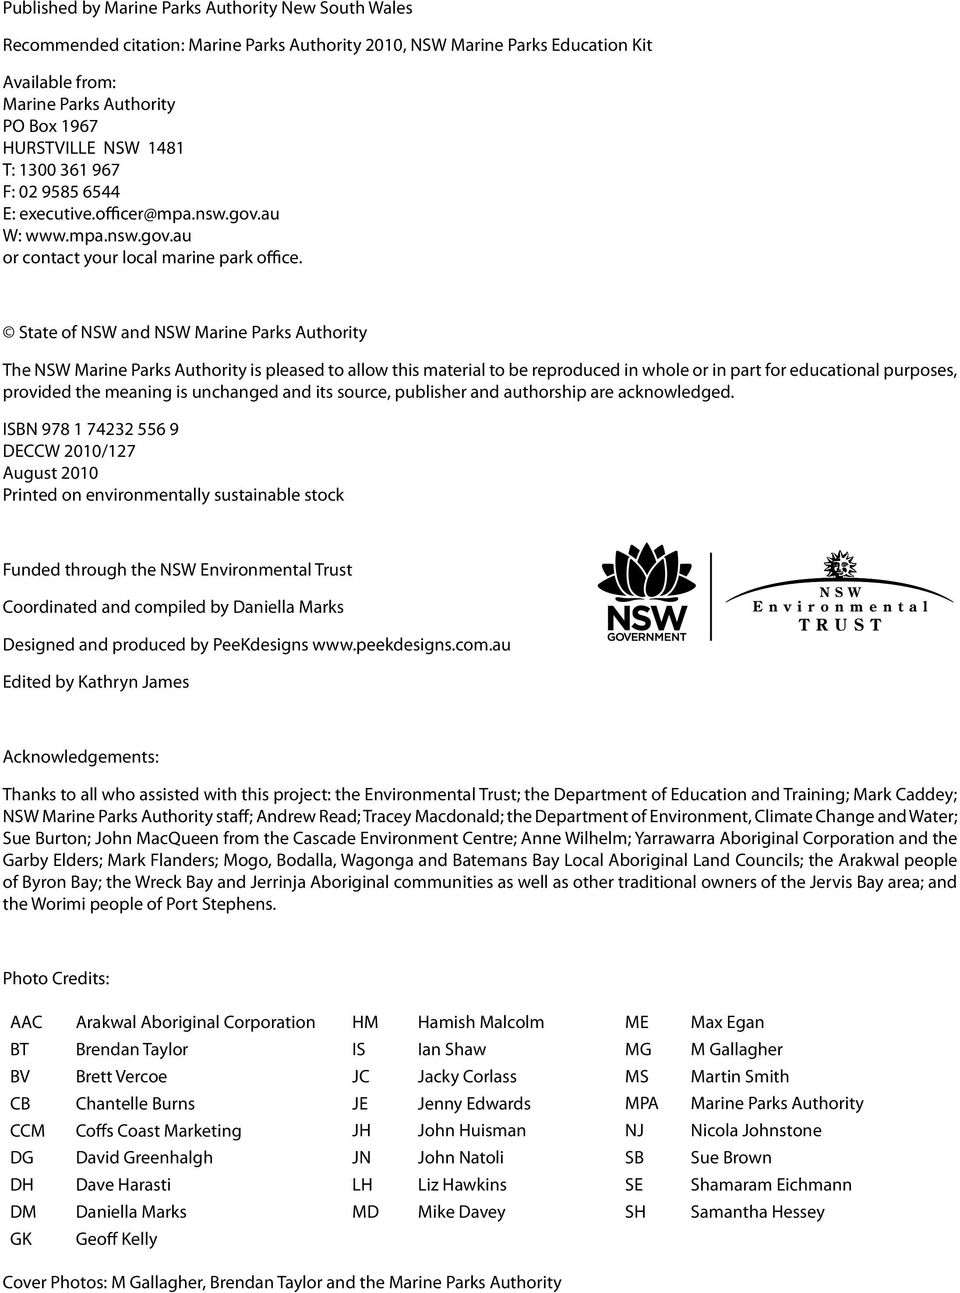 State of NSW and NSW Marine Parks Authority The NSW Marine Parks Authority is pleased to allow this material to be reproduced in whole or in part for educational purposes, provided the meaning is